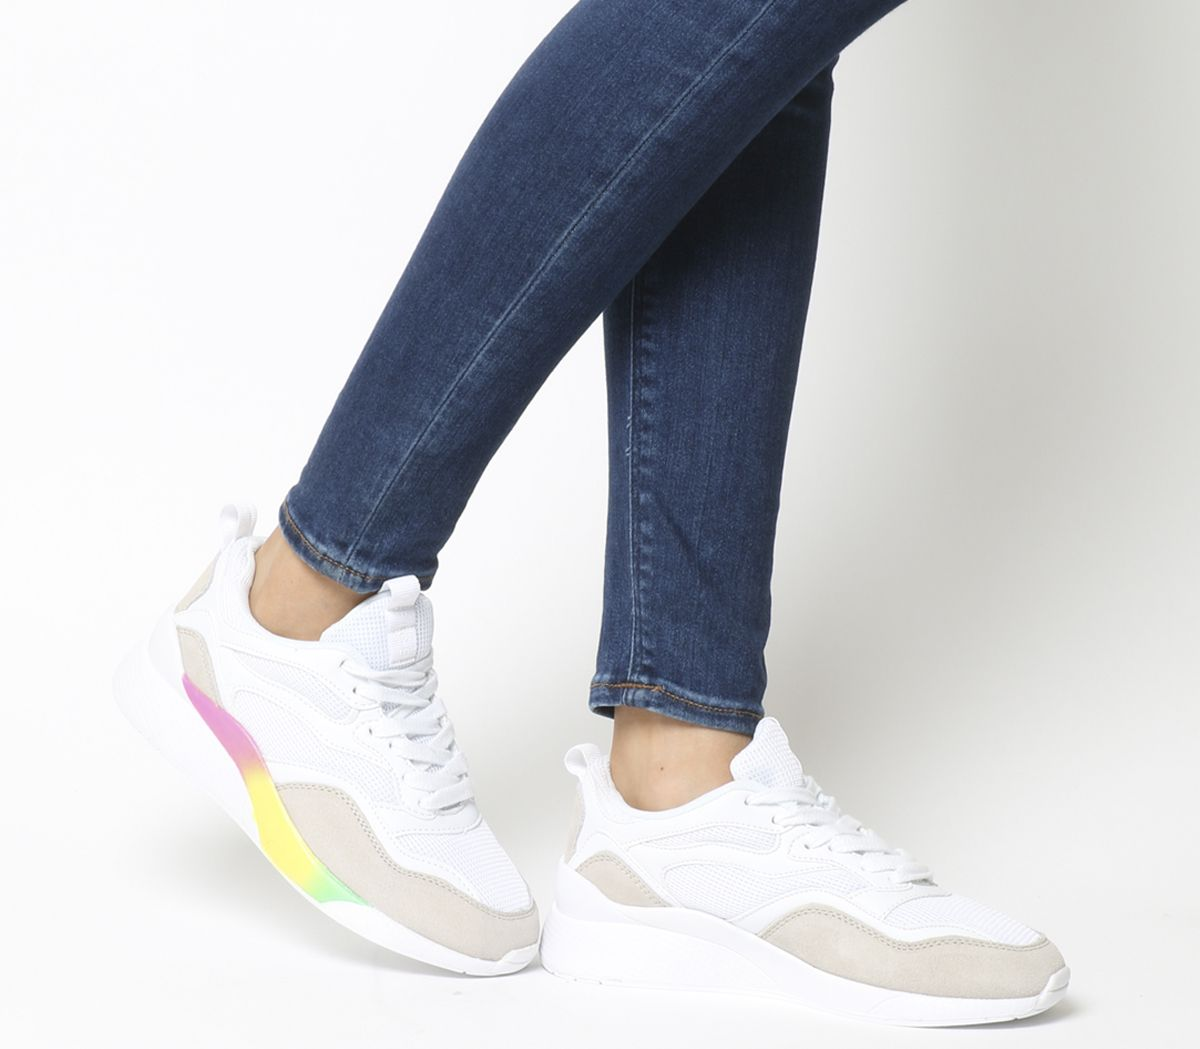 94ee6ce4006d4 Office Fife Chunky Lace Up Trainers White With Rainbow Sole - Flats